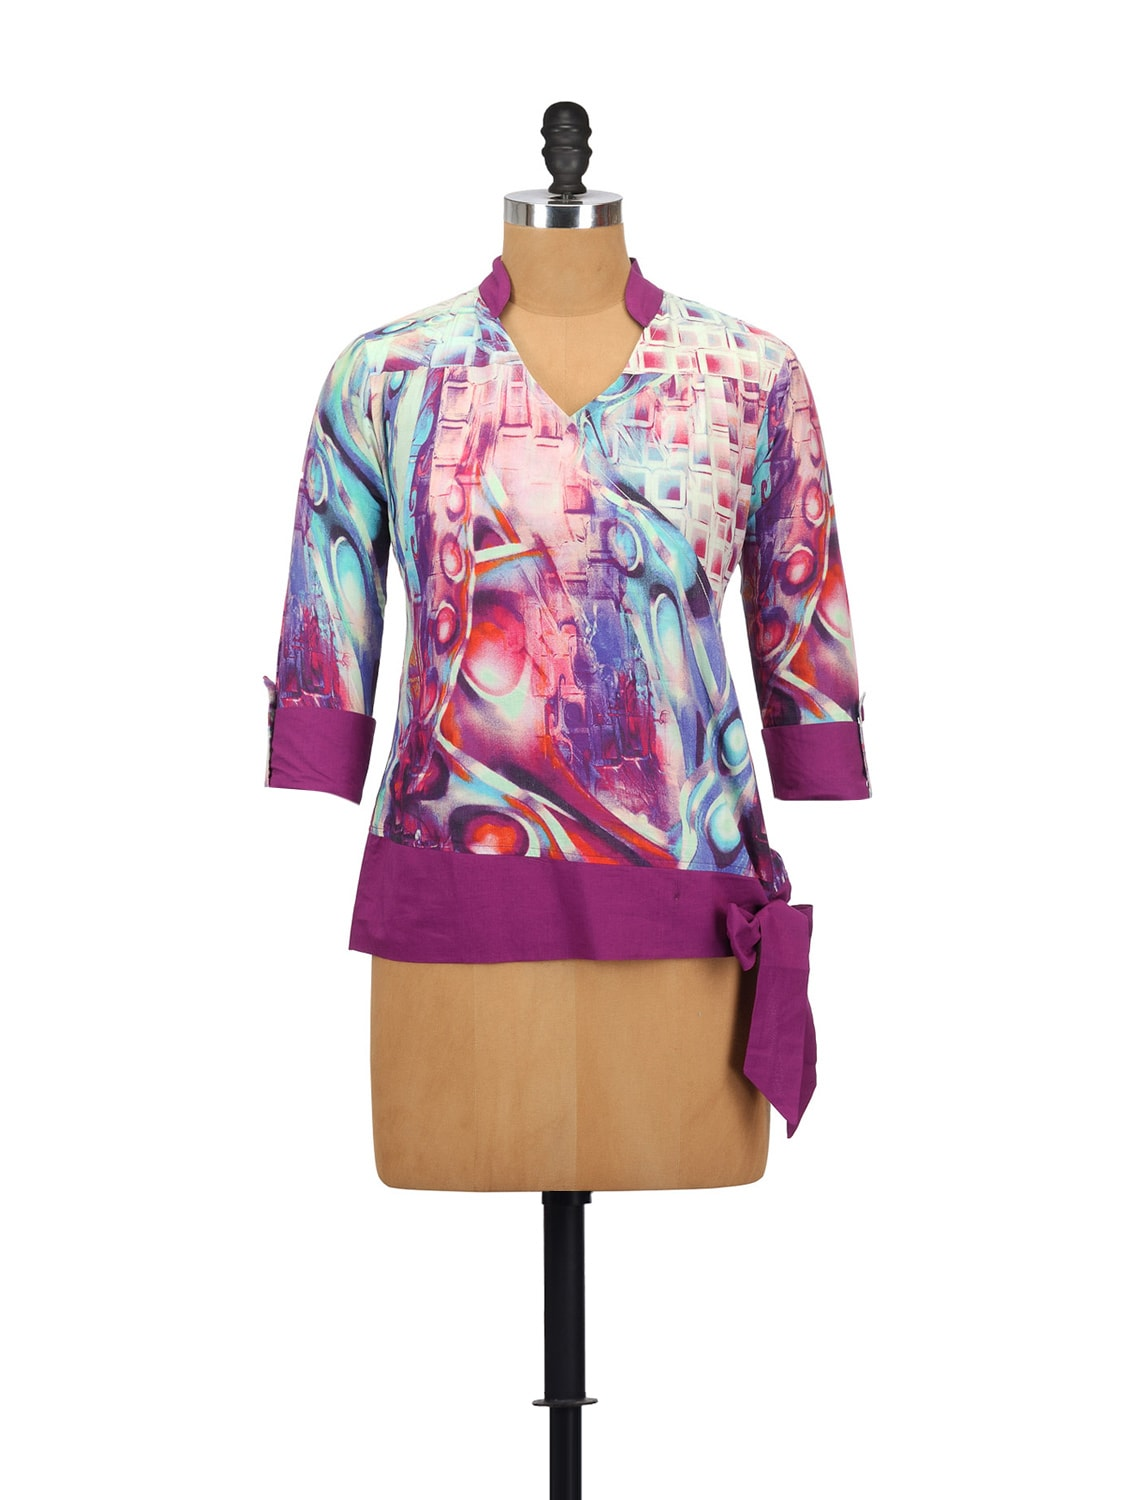 Plum Passion Cotton Top - Glam And Luxe